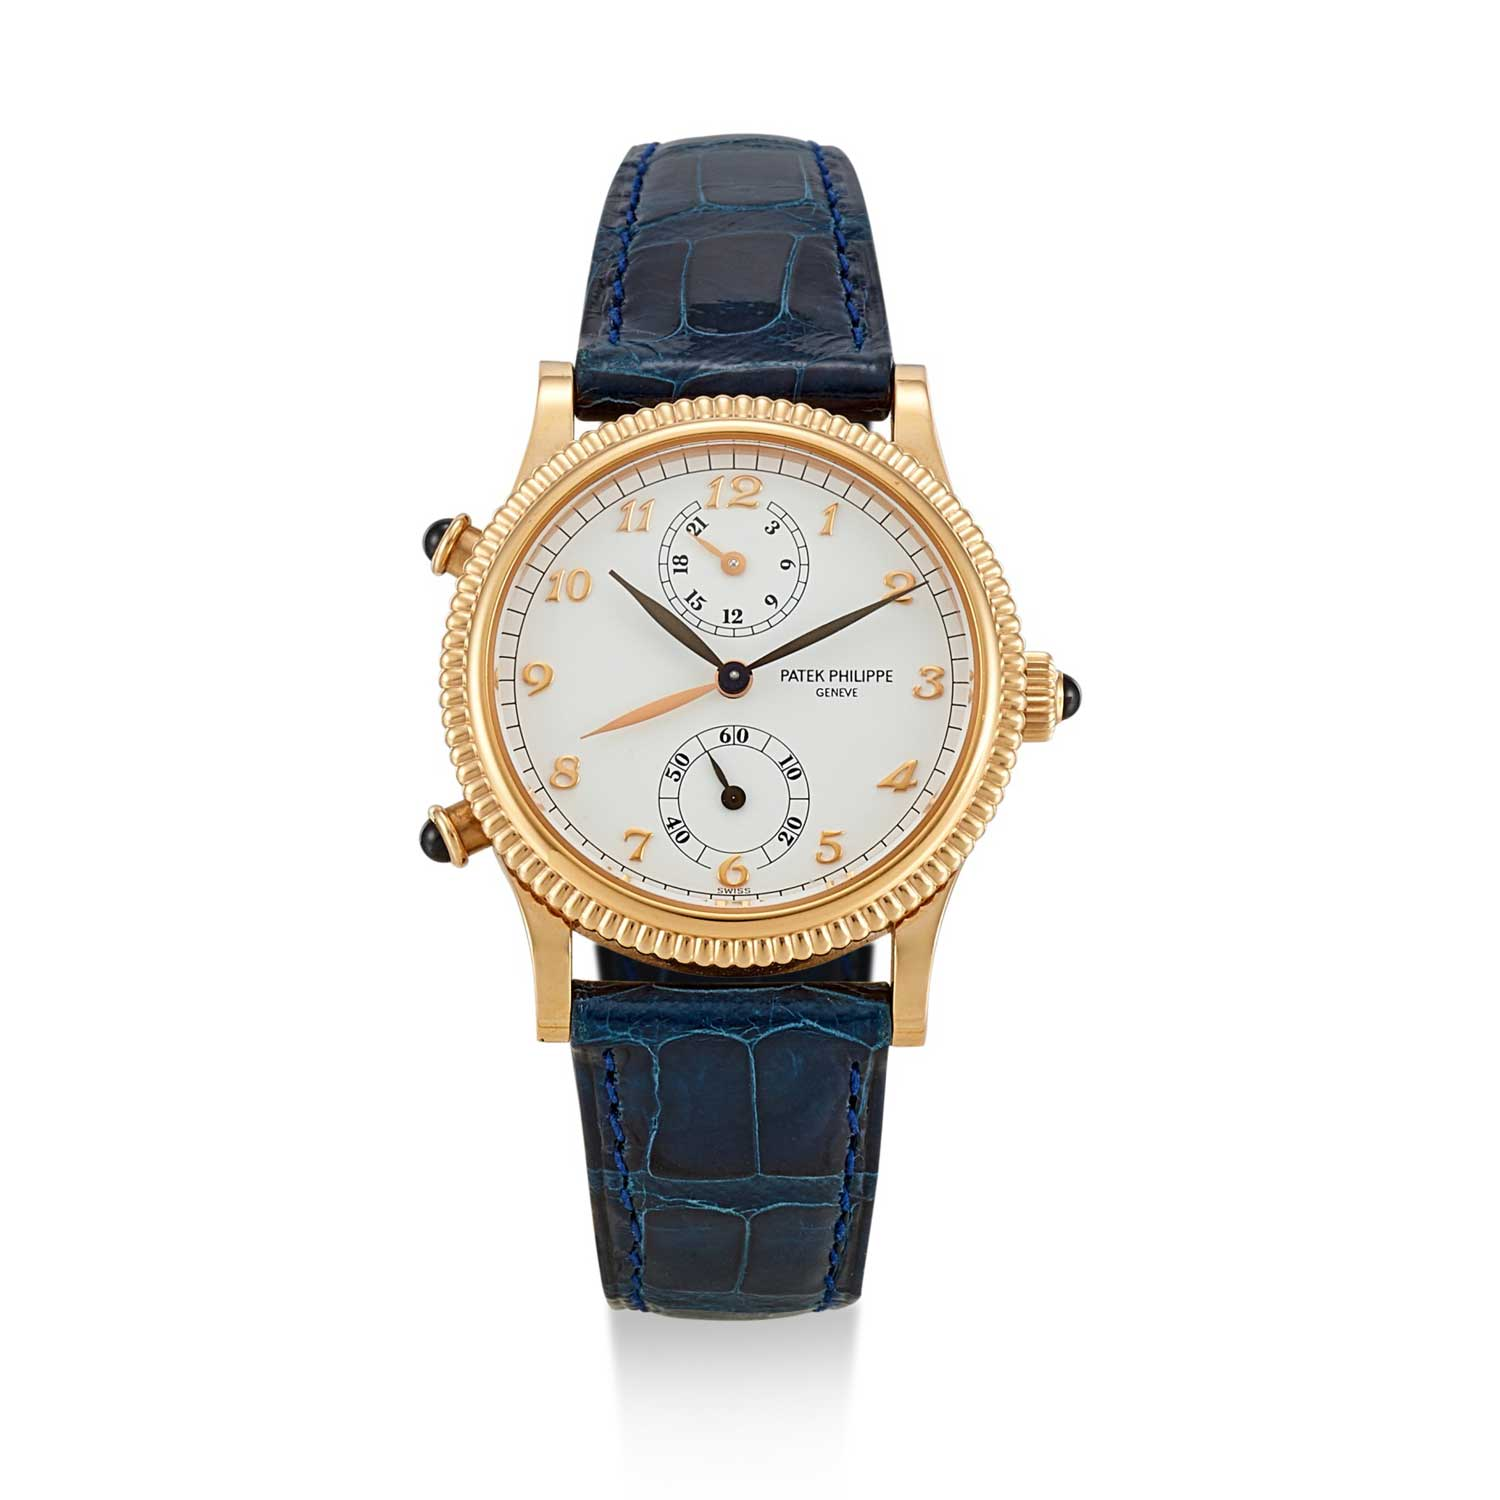 Patek Philippe launched the ref. 4864 Travel Time in 1992, powered by the cal. 215 PS FUS 24H (Image: sothebys.com)